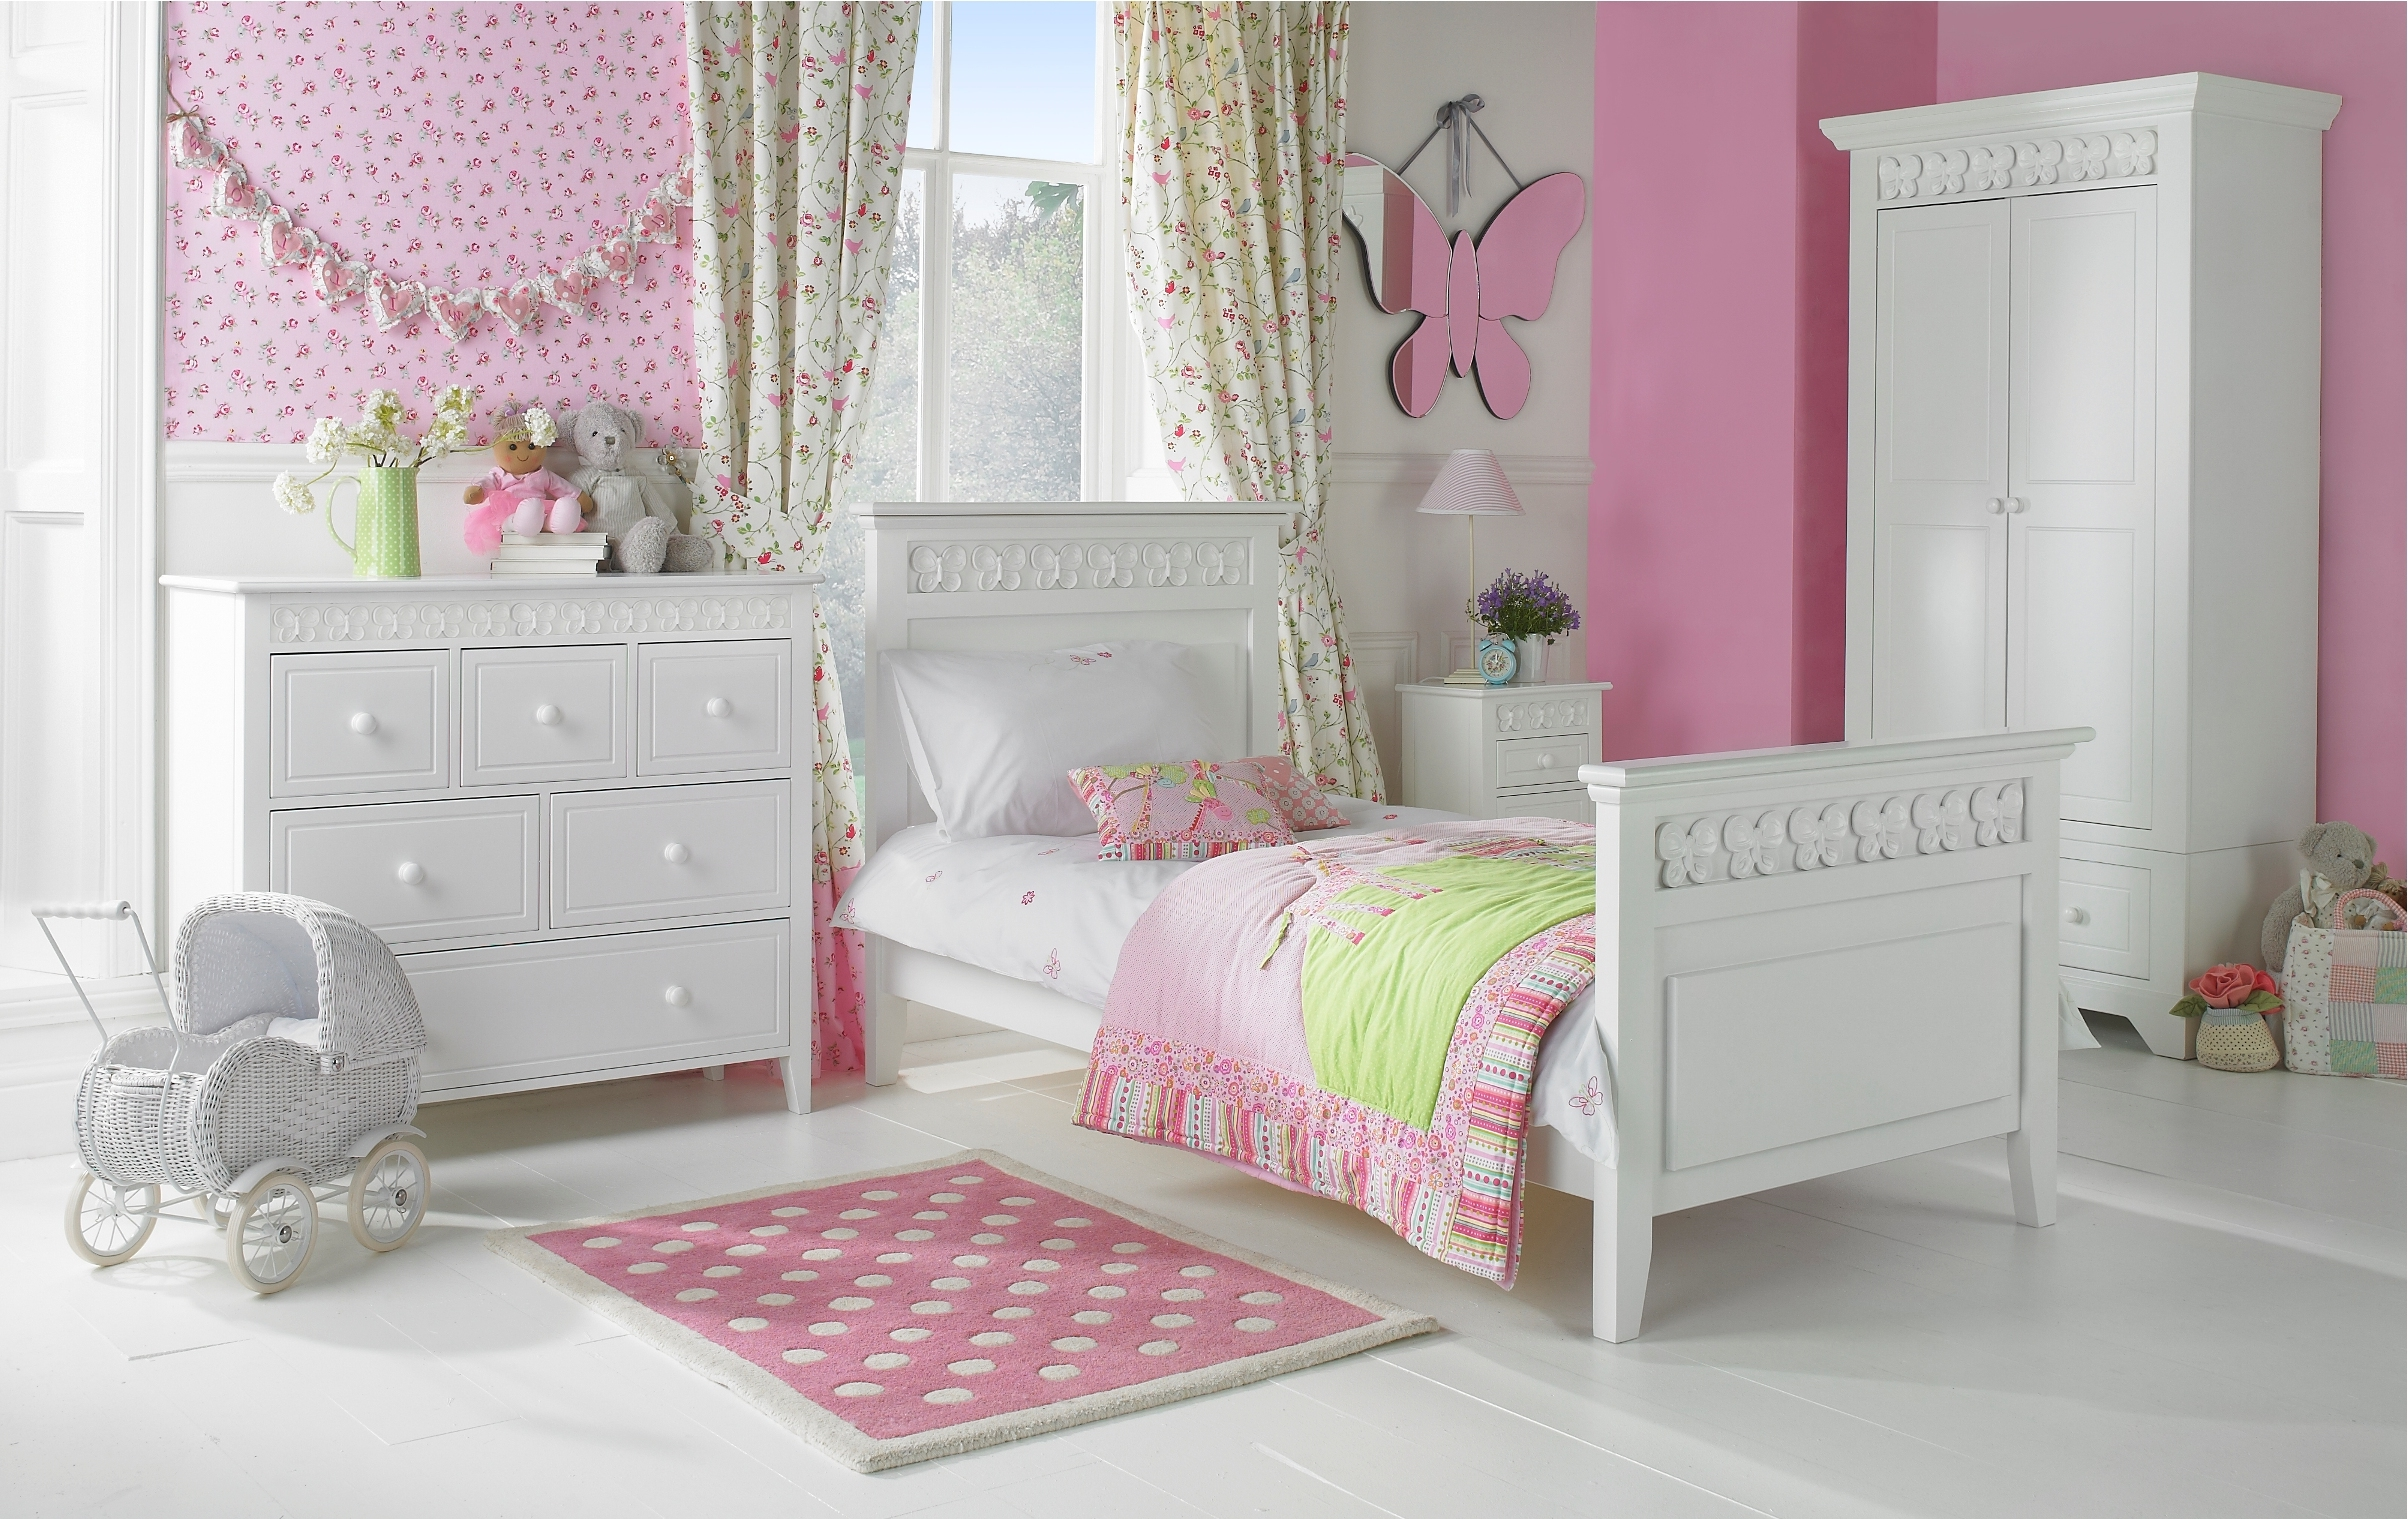 Clean White Girls Bedroom Set With Floral Window Curtains Plus